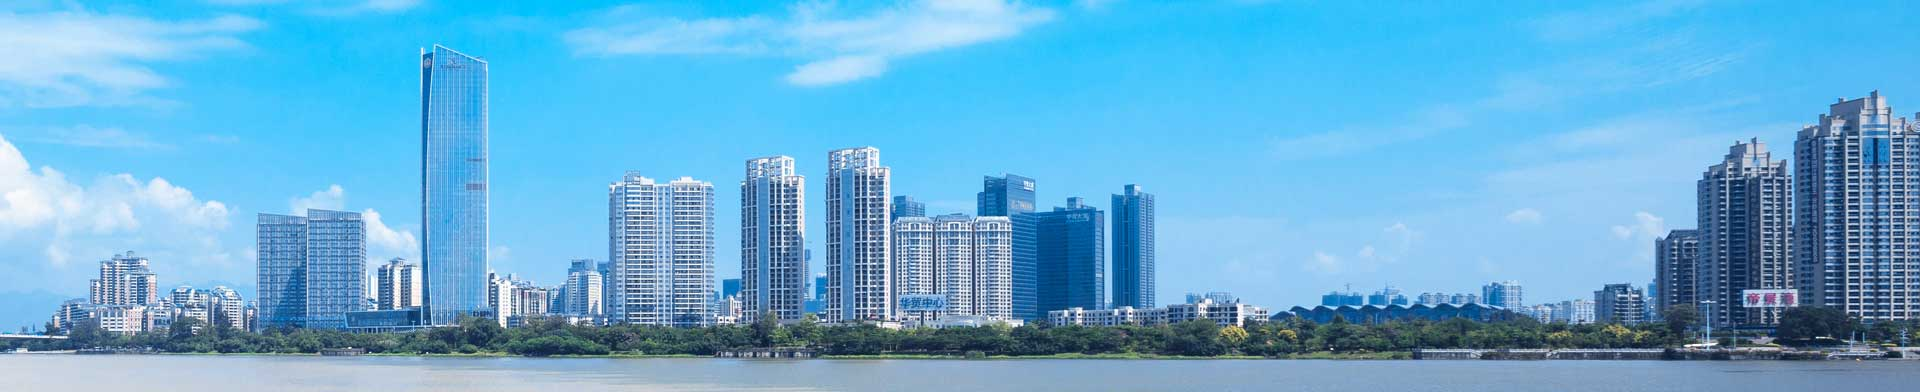 Panorama shot of Huizhou